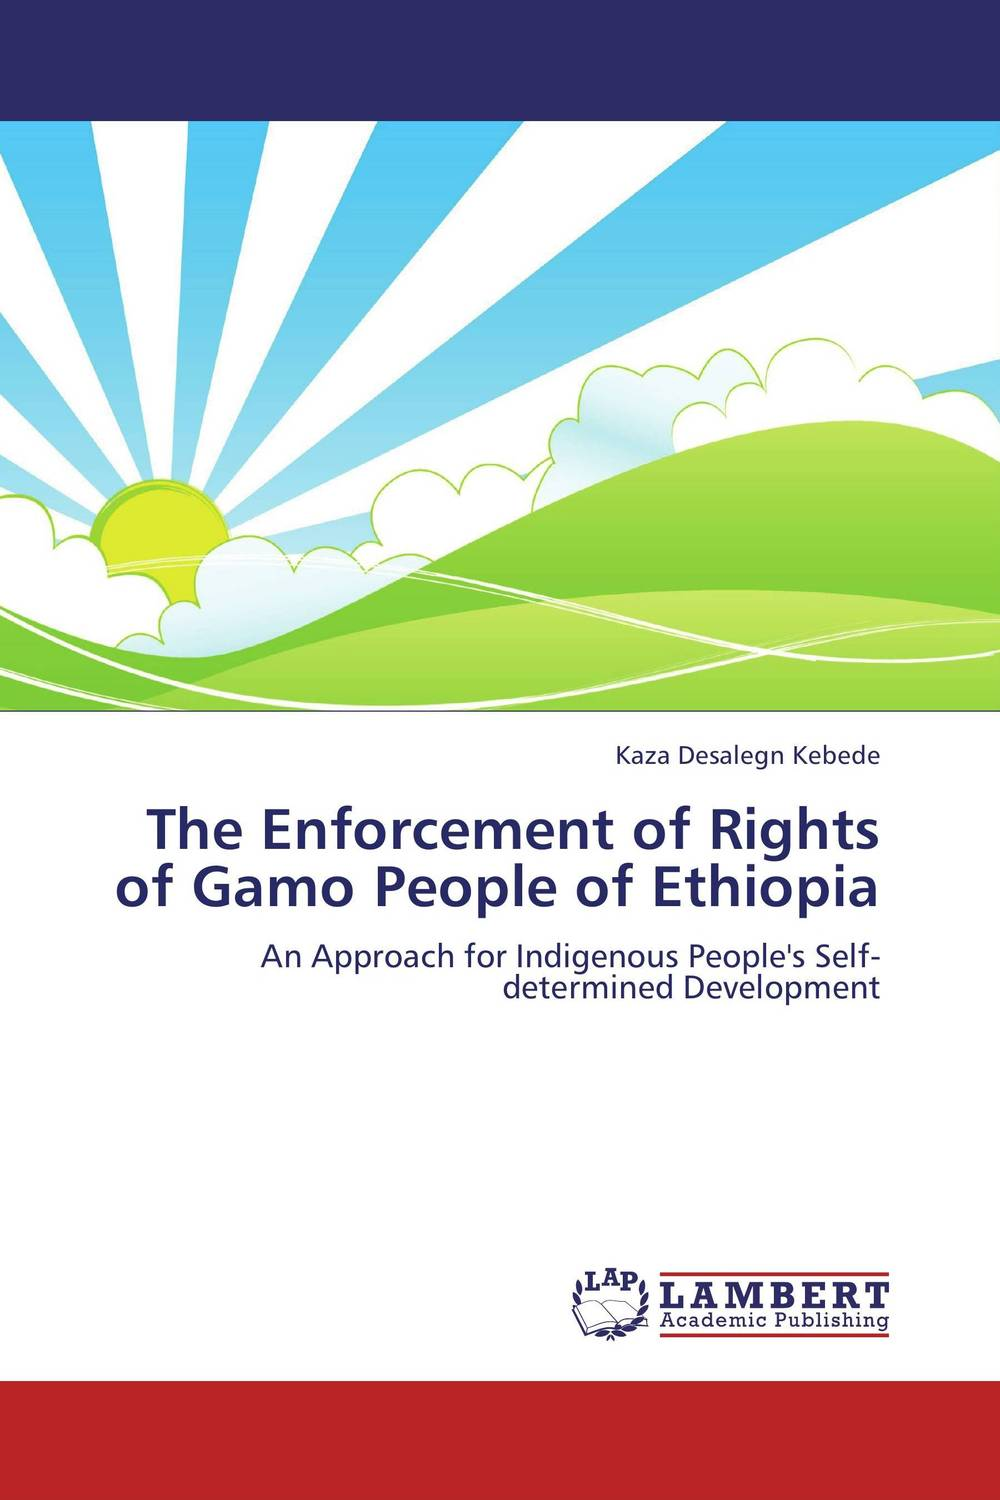 The Enforcement of Rights of Gamo People of Ethiopia прицел gamo 3 9х40 llwr ve39x40wrv w1pmv